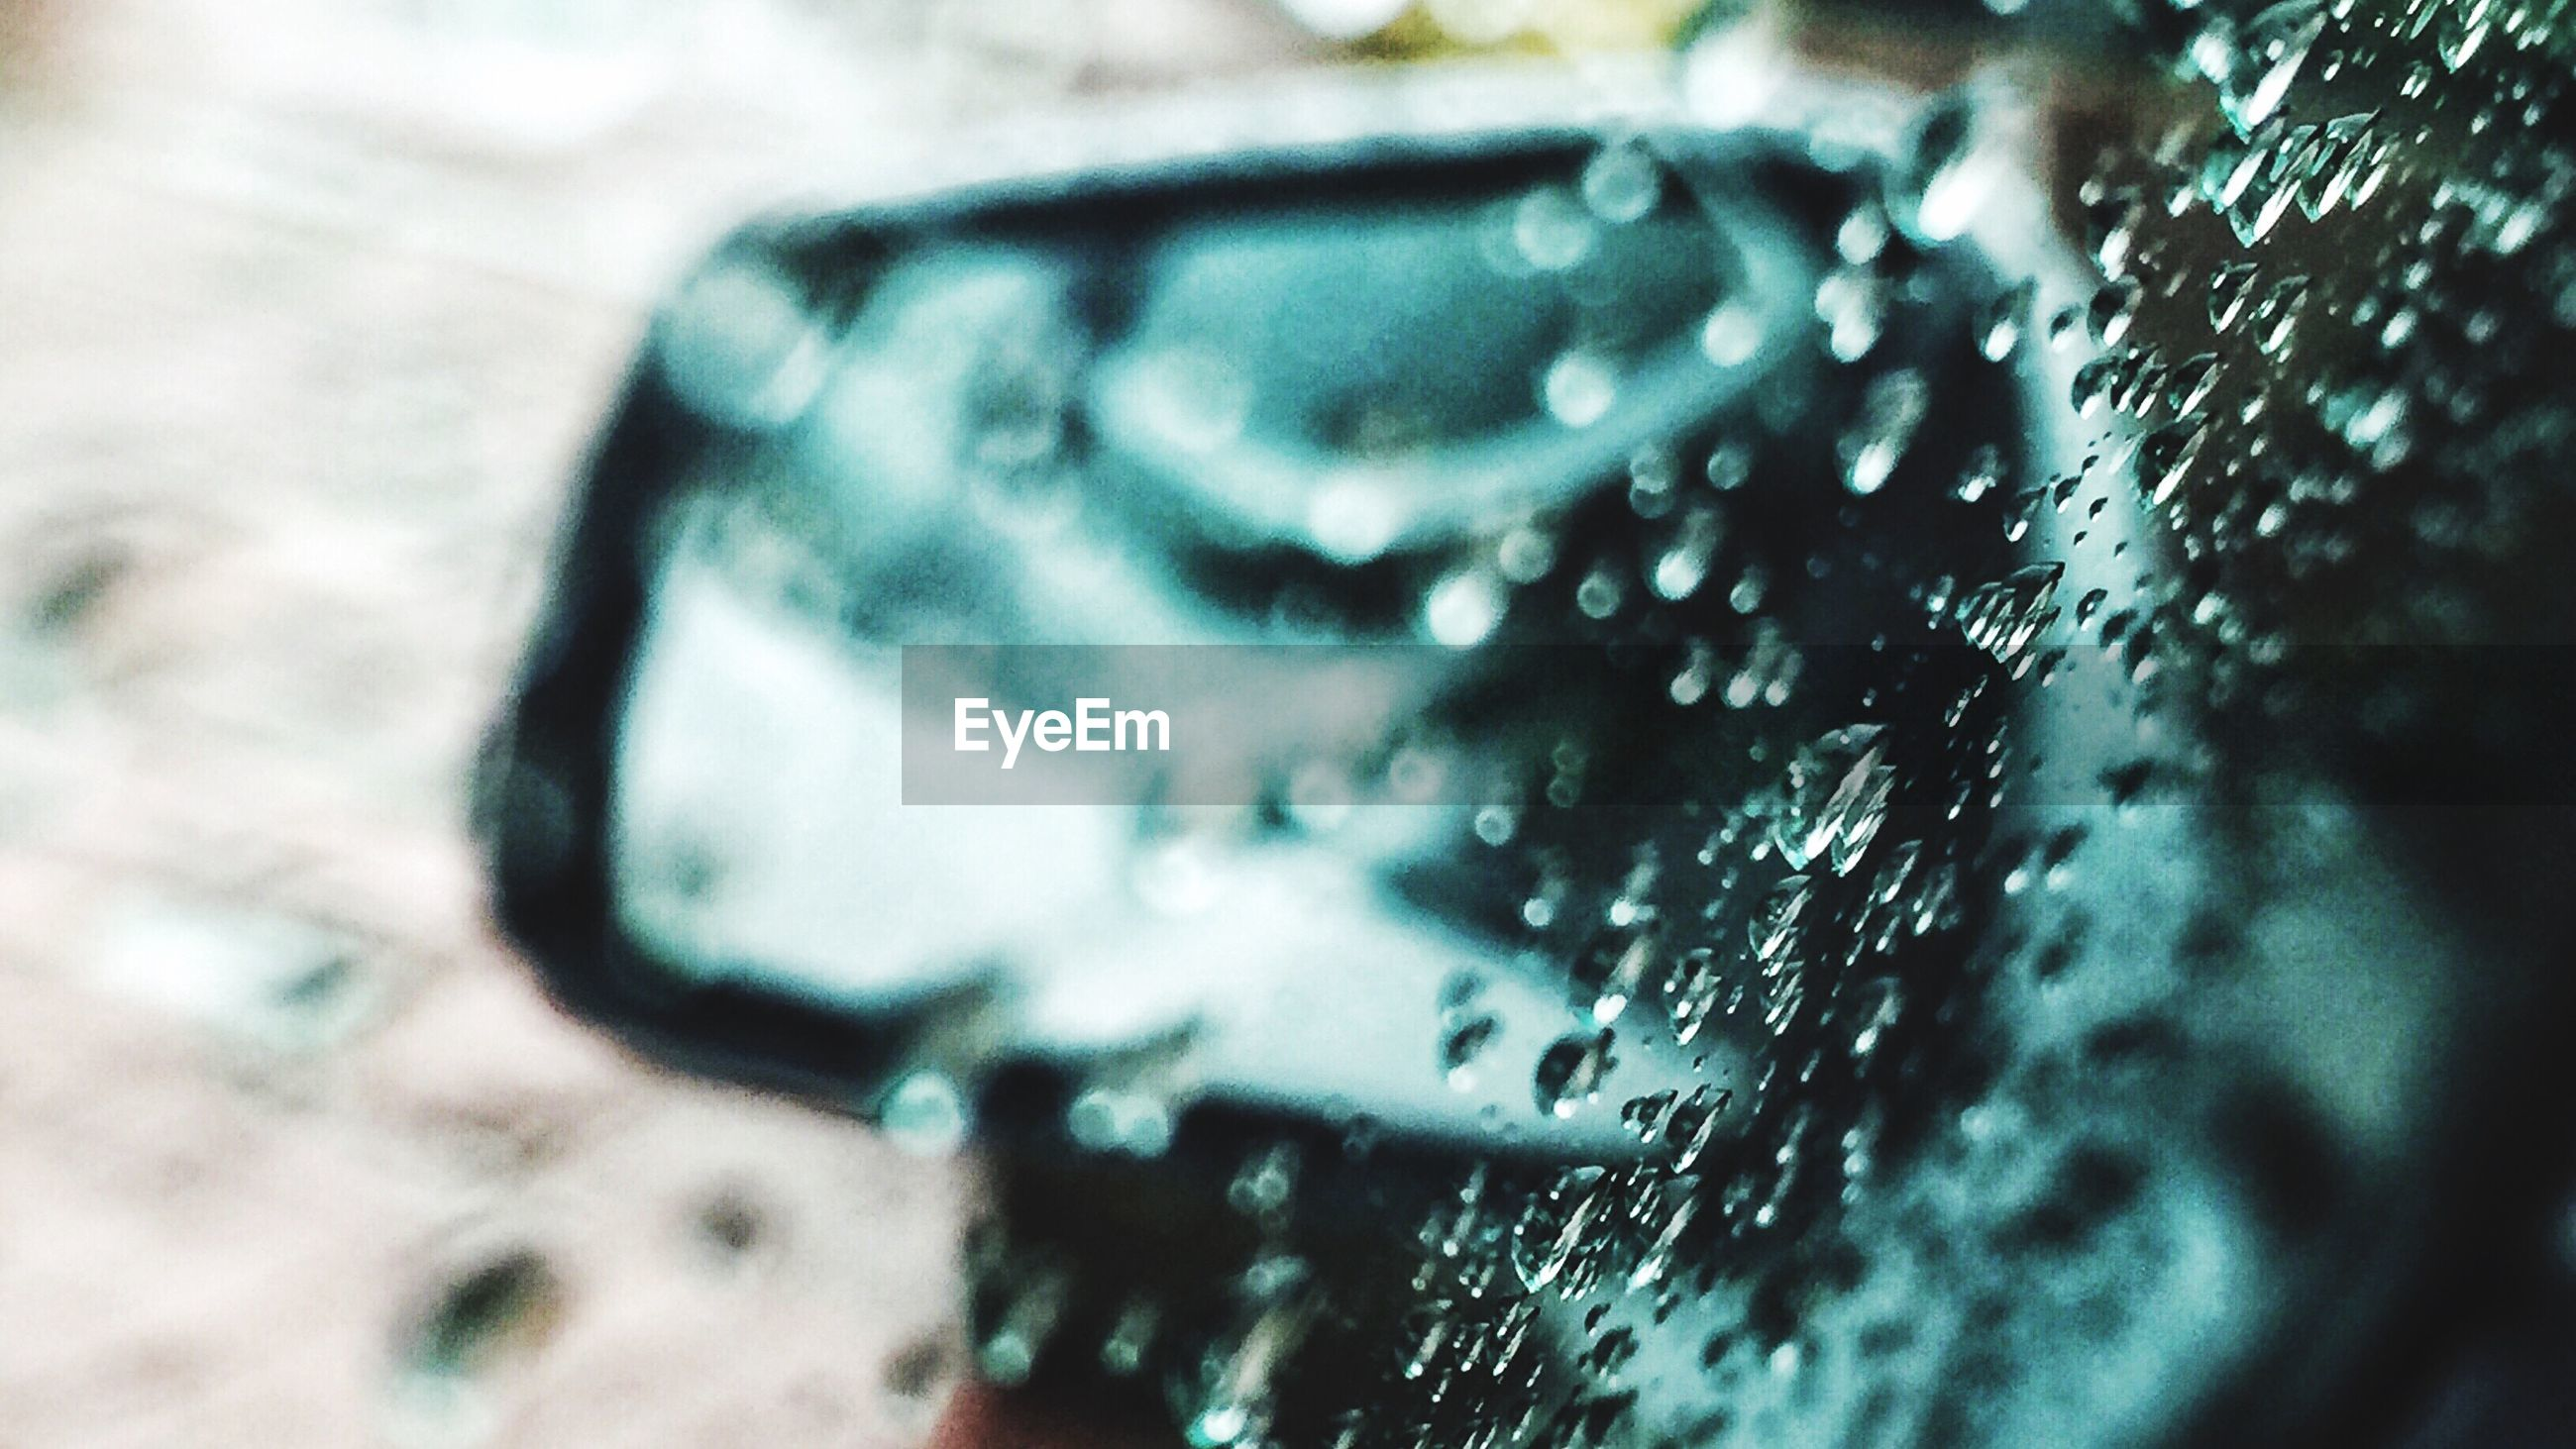 close-up, land vehicle, wet, indoors, transportation, street, selective focus, mode of transport, glass - material, focus on foreground, drop, reflection, car, high angle view, rain, transparent, day, water, no people, window